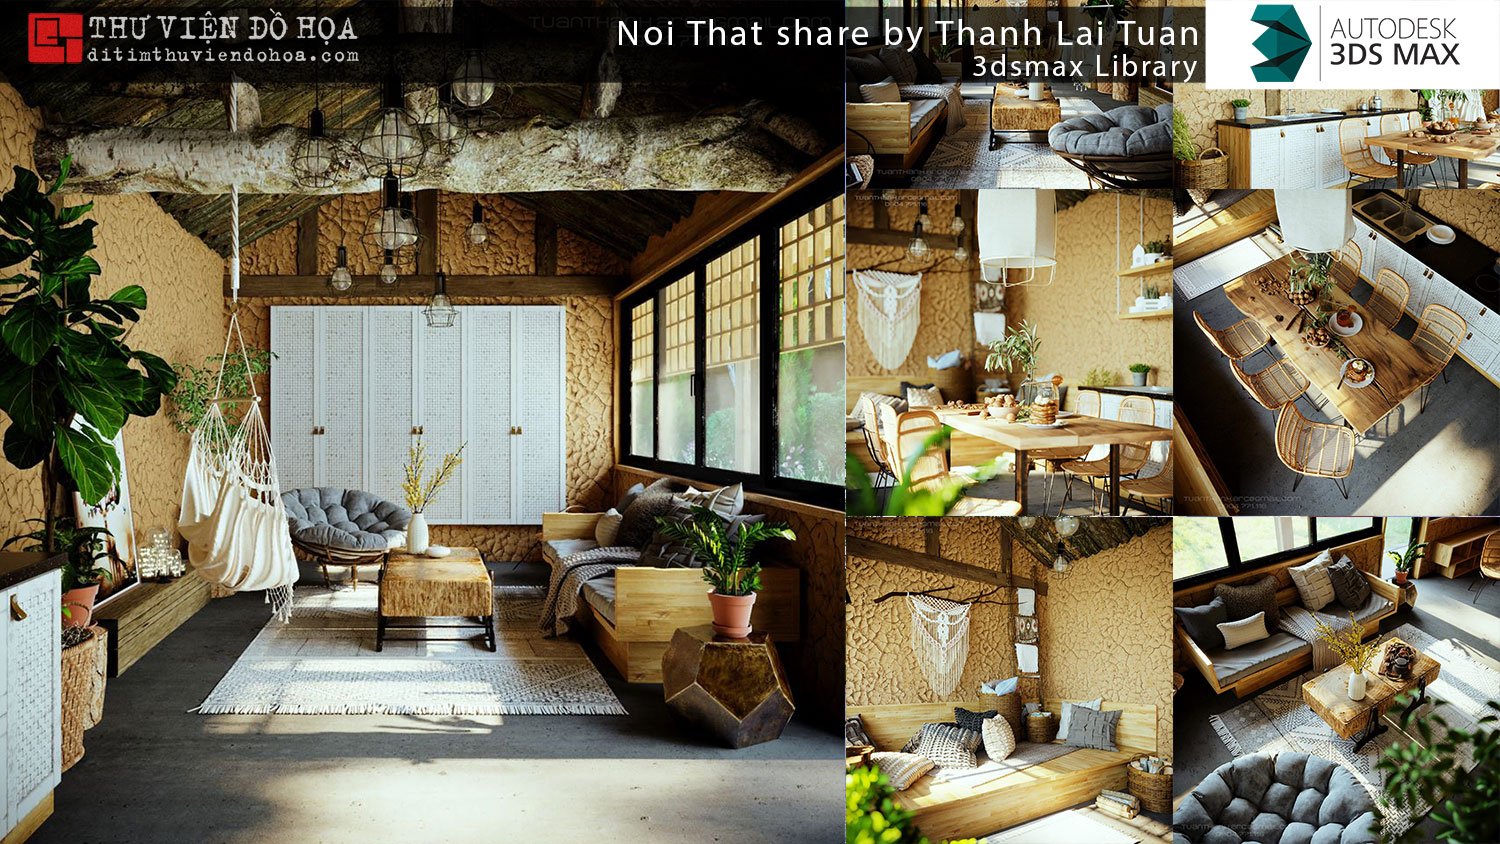 3dsmax Library - Noi That share by Thanh Lai Tuan